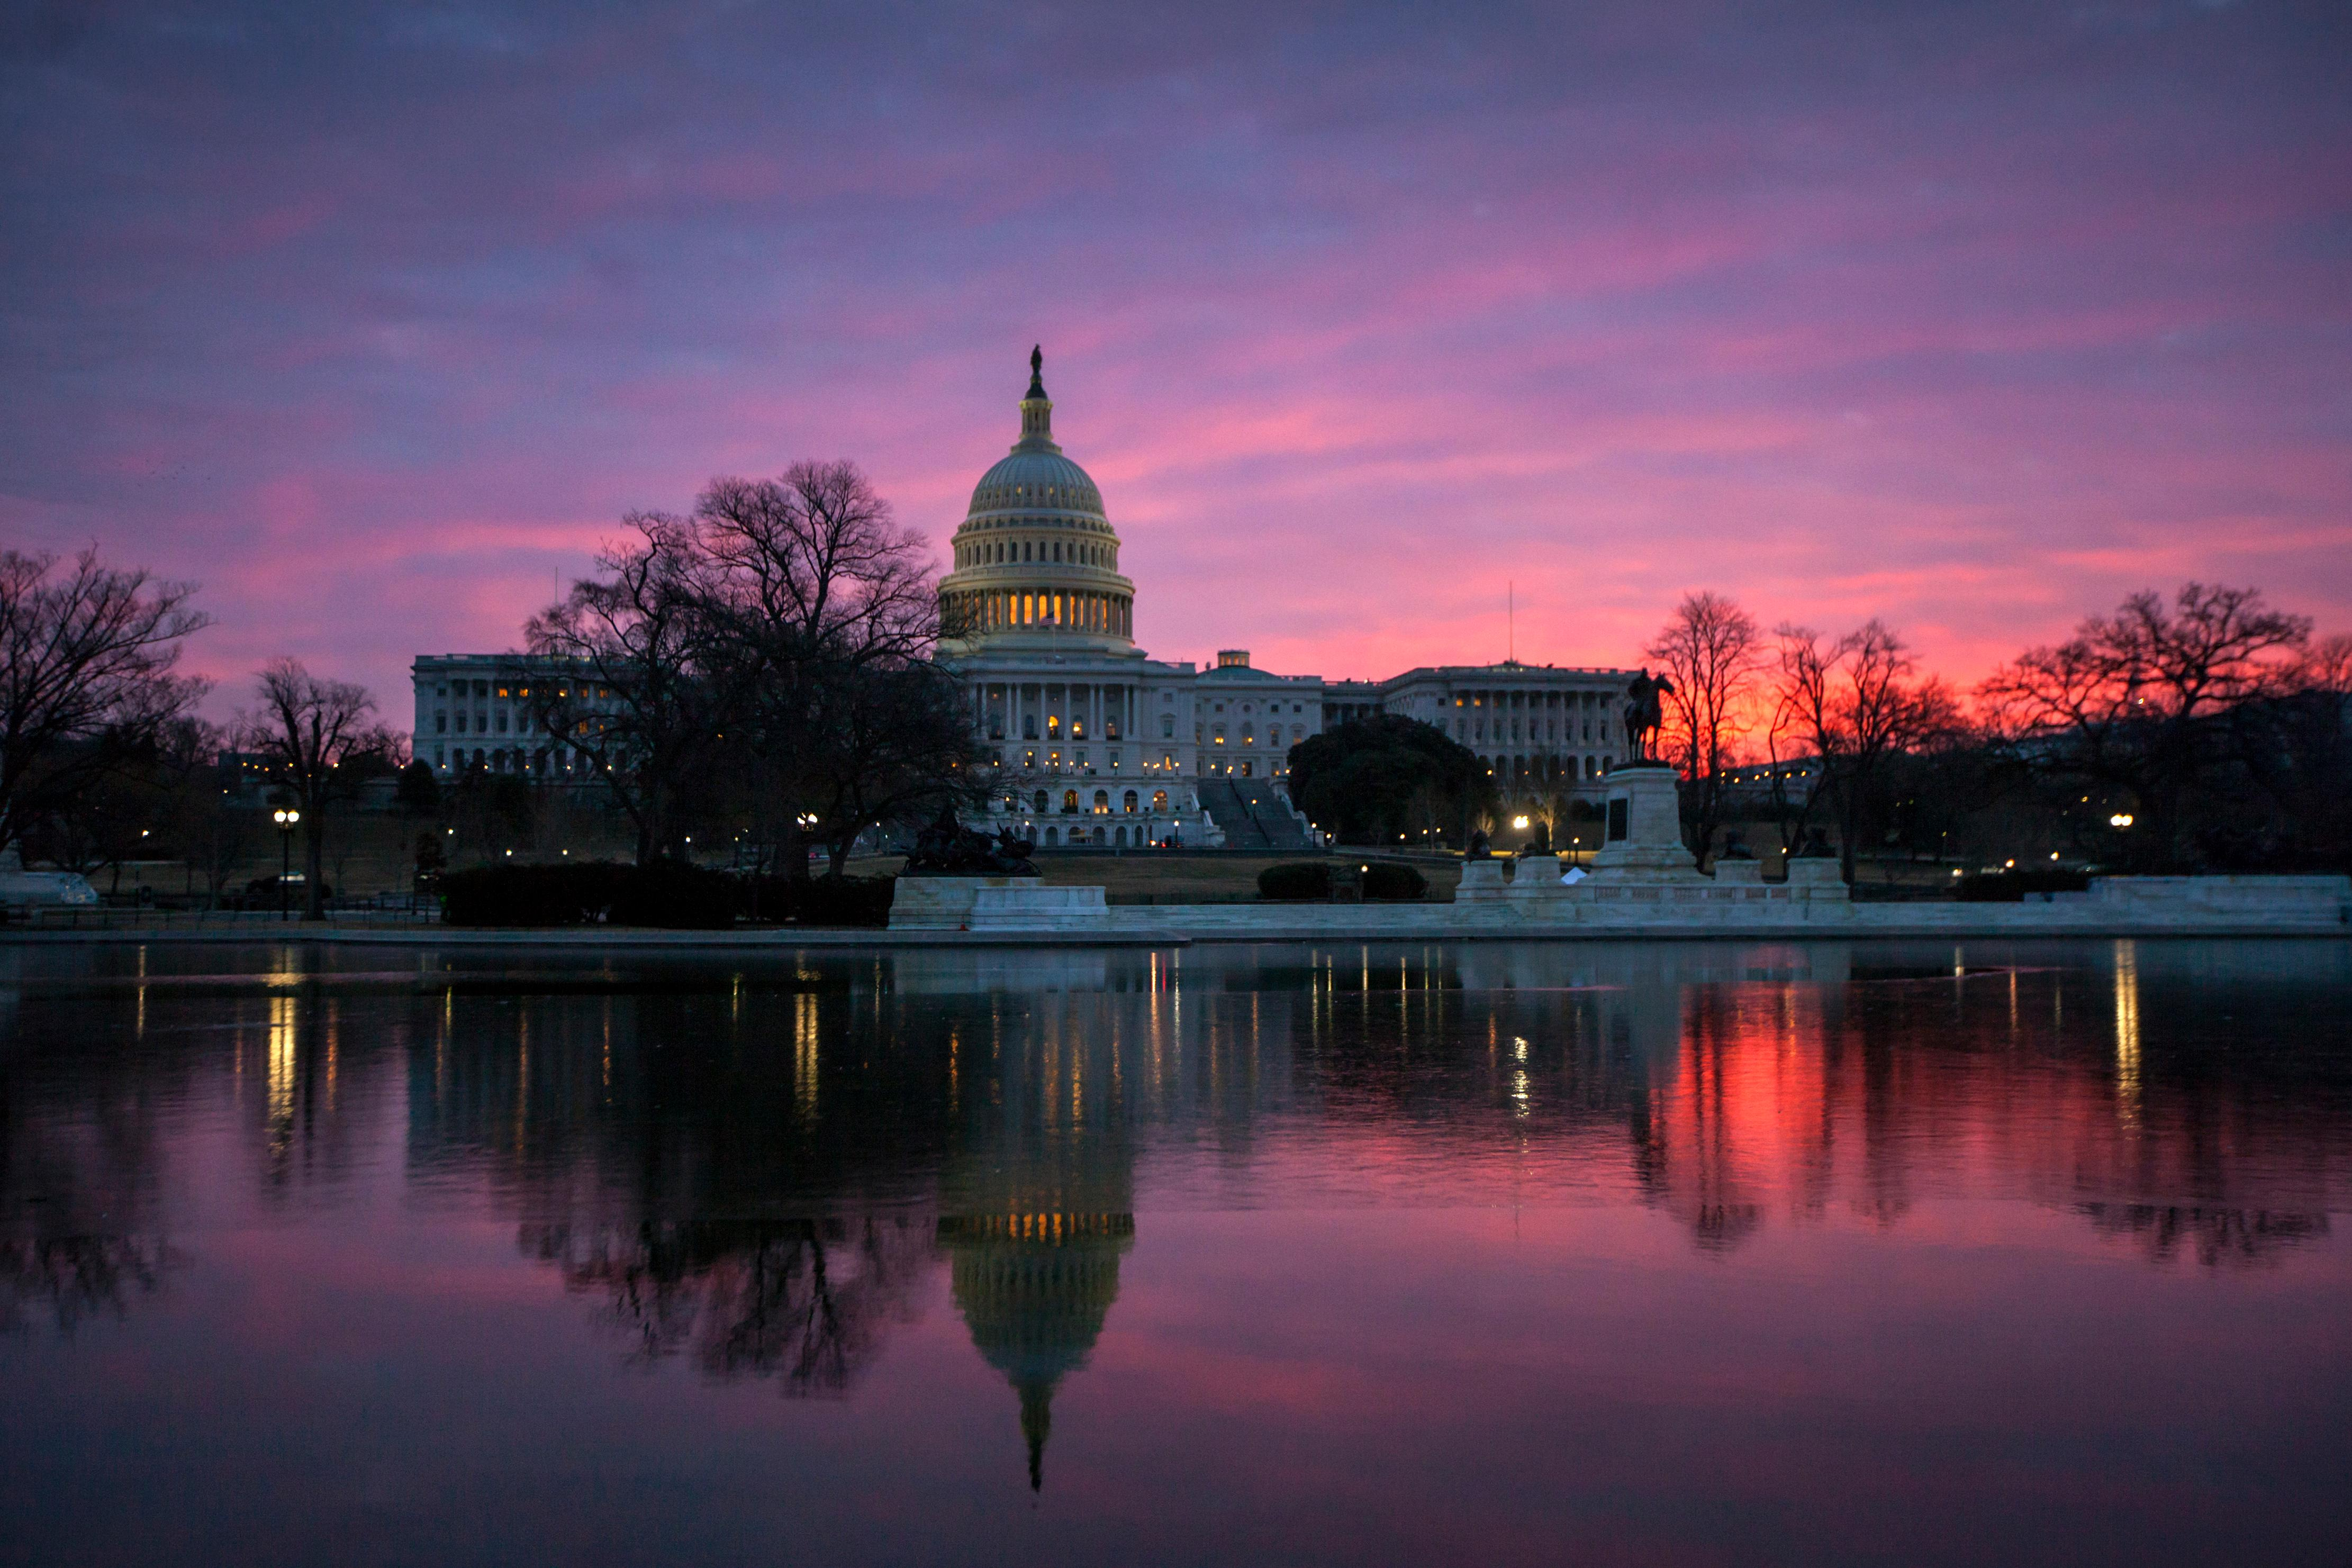 FILE - In this Feb. 6, 2018, file photo, dawn breaks over the Capitol in Washington. The once bipartisan drive to curb increases in health care premiums has devolved into a partisan struggle with escalating demands by each side. It's unclear they'll be able to reach an agreement. And the two parties may end up blaming each other this fall as states announce next year's inevitably higher insurance rates _ just weeks before Election Day on Nov. 6. (AP Photo/J. Scott Applewhite, File)